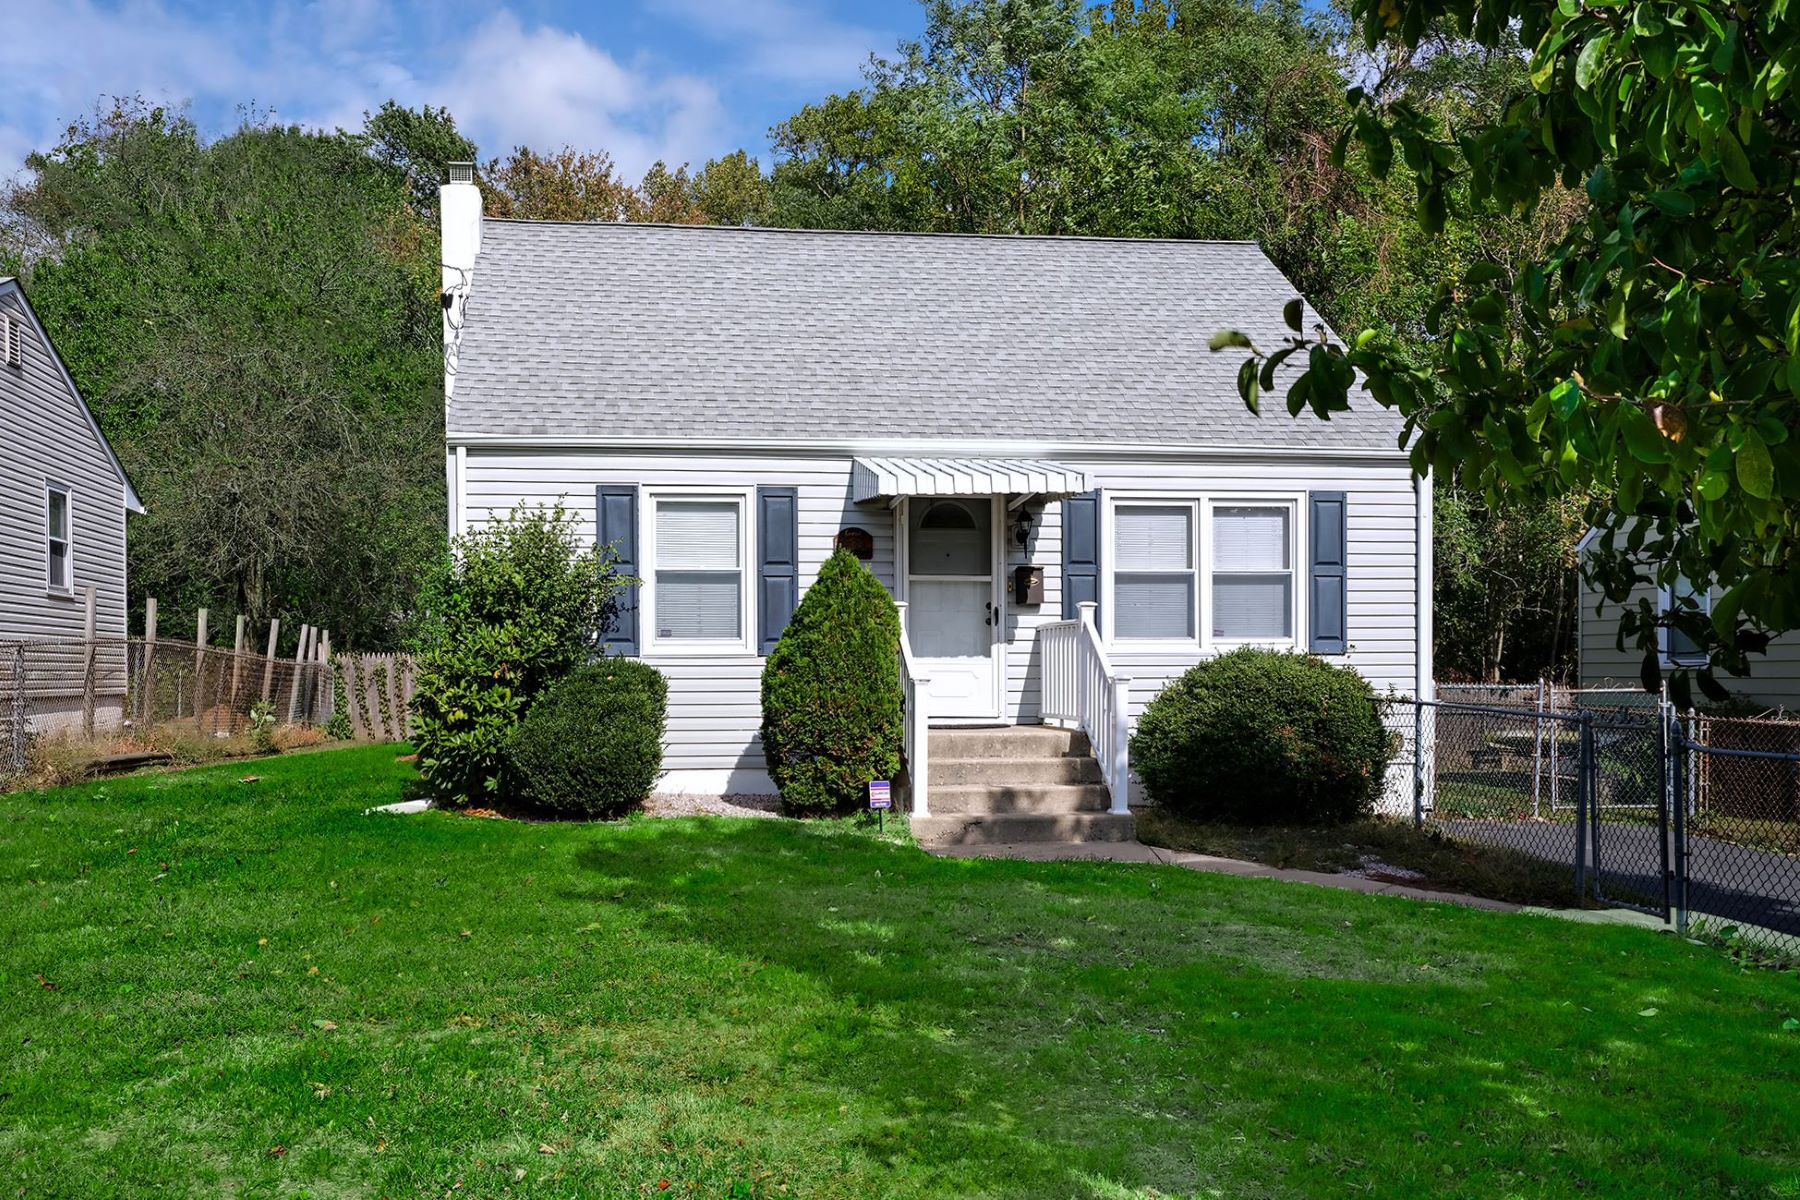 Single Family Homes for Sale at Adorable Cottage in Steinert School District 134 Hauser Avenue Hamilton, New Jersey 08620 United States